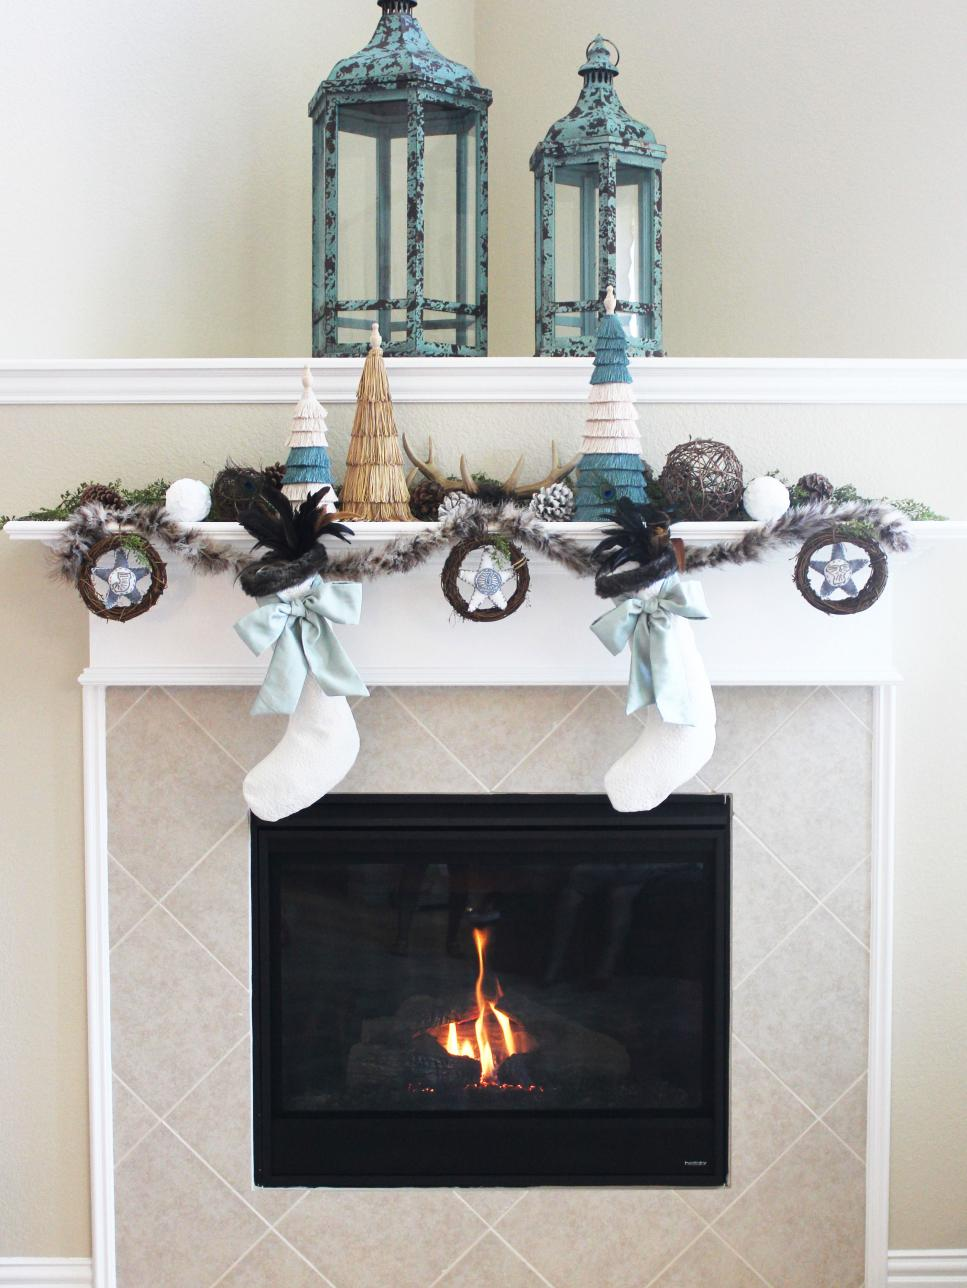 use blue metal lanterns to decorate christmas fireplace mantel decor for interesting sitting room - Images Of Fireplace Mantels Decorated For Christmas